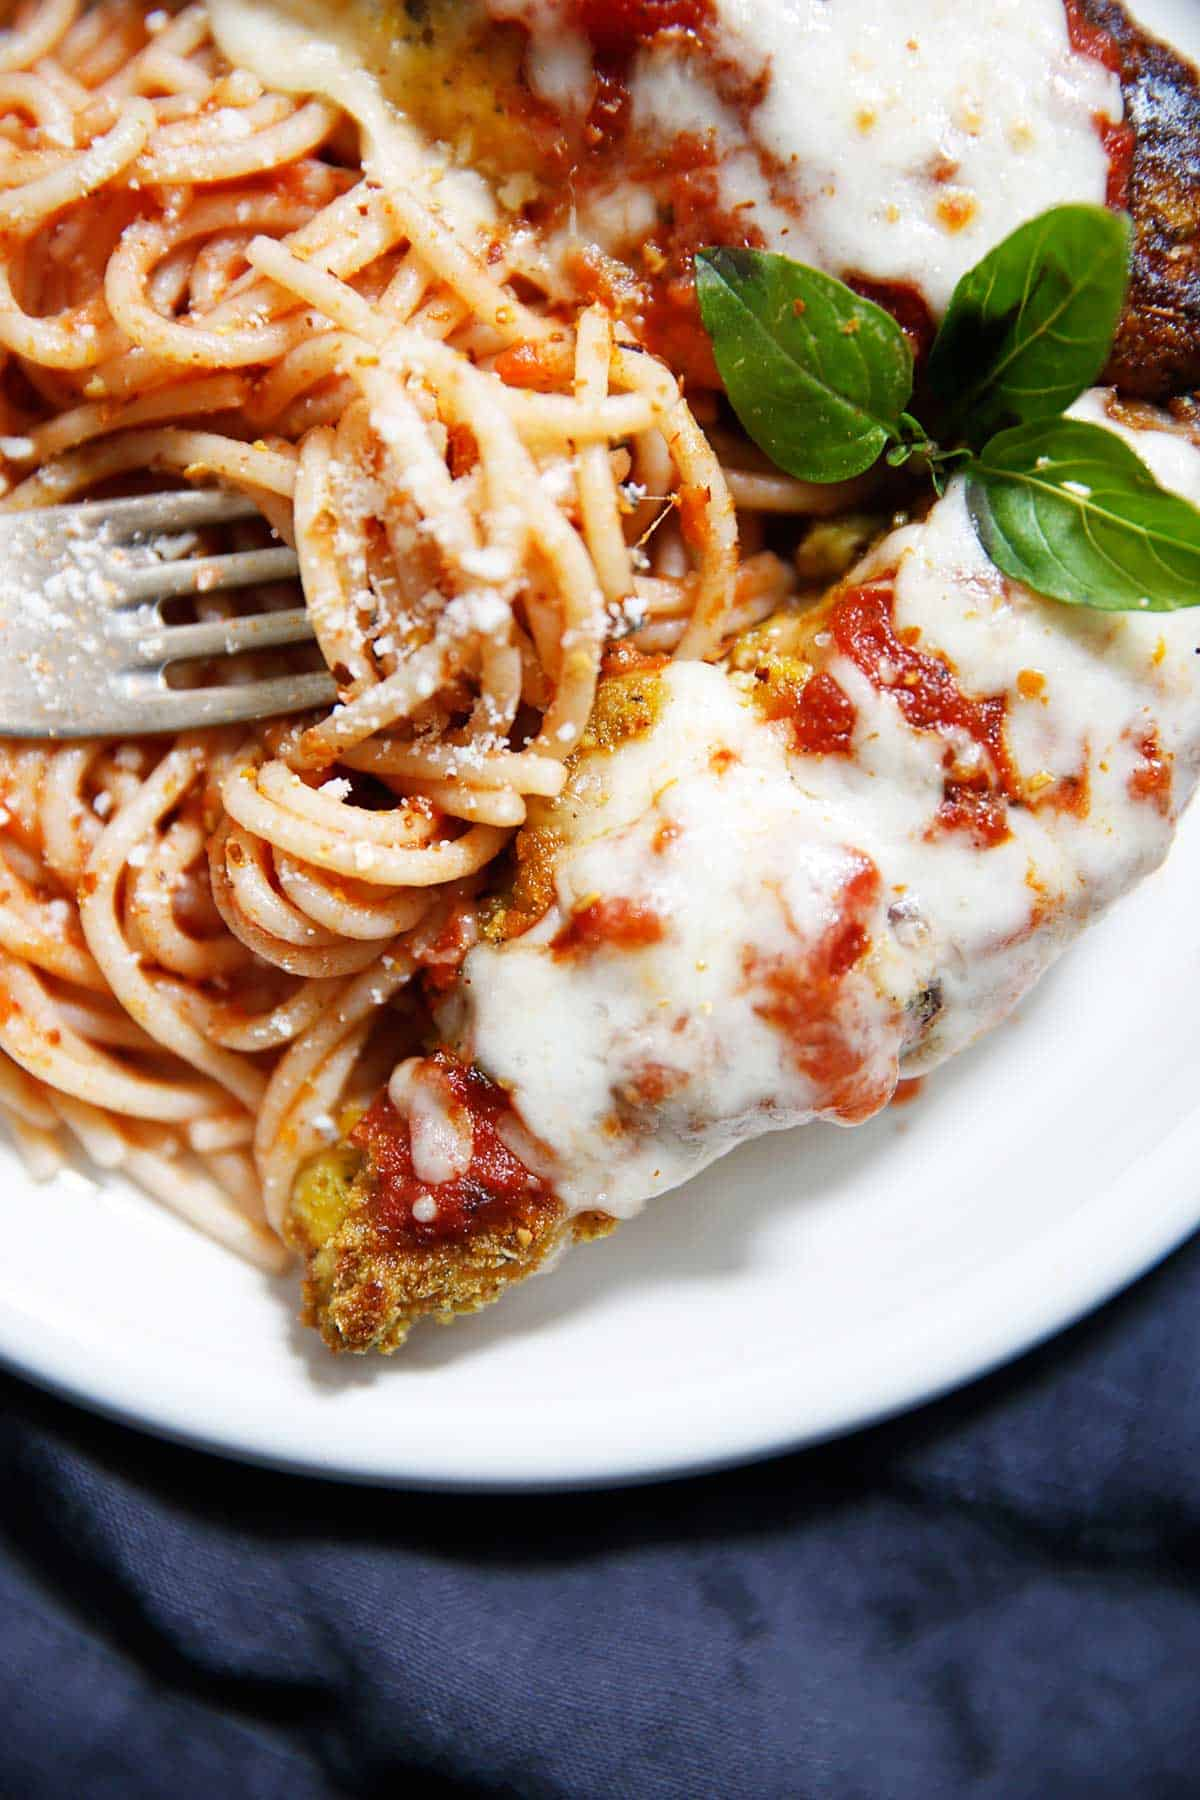 Low Carb Chicken Parmesan (keto, paleo) - Lexi's Clean Kitchen